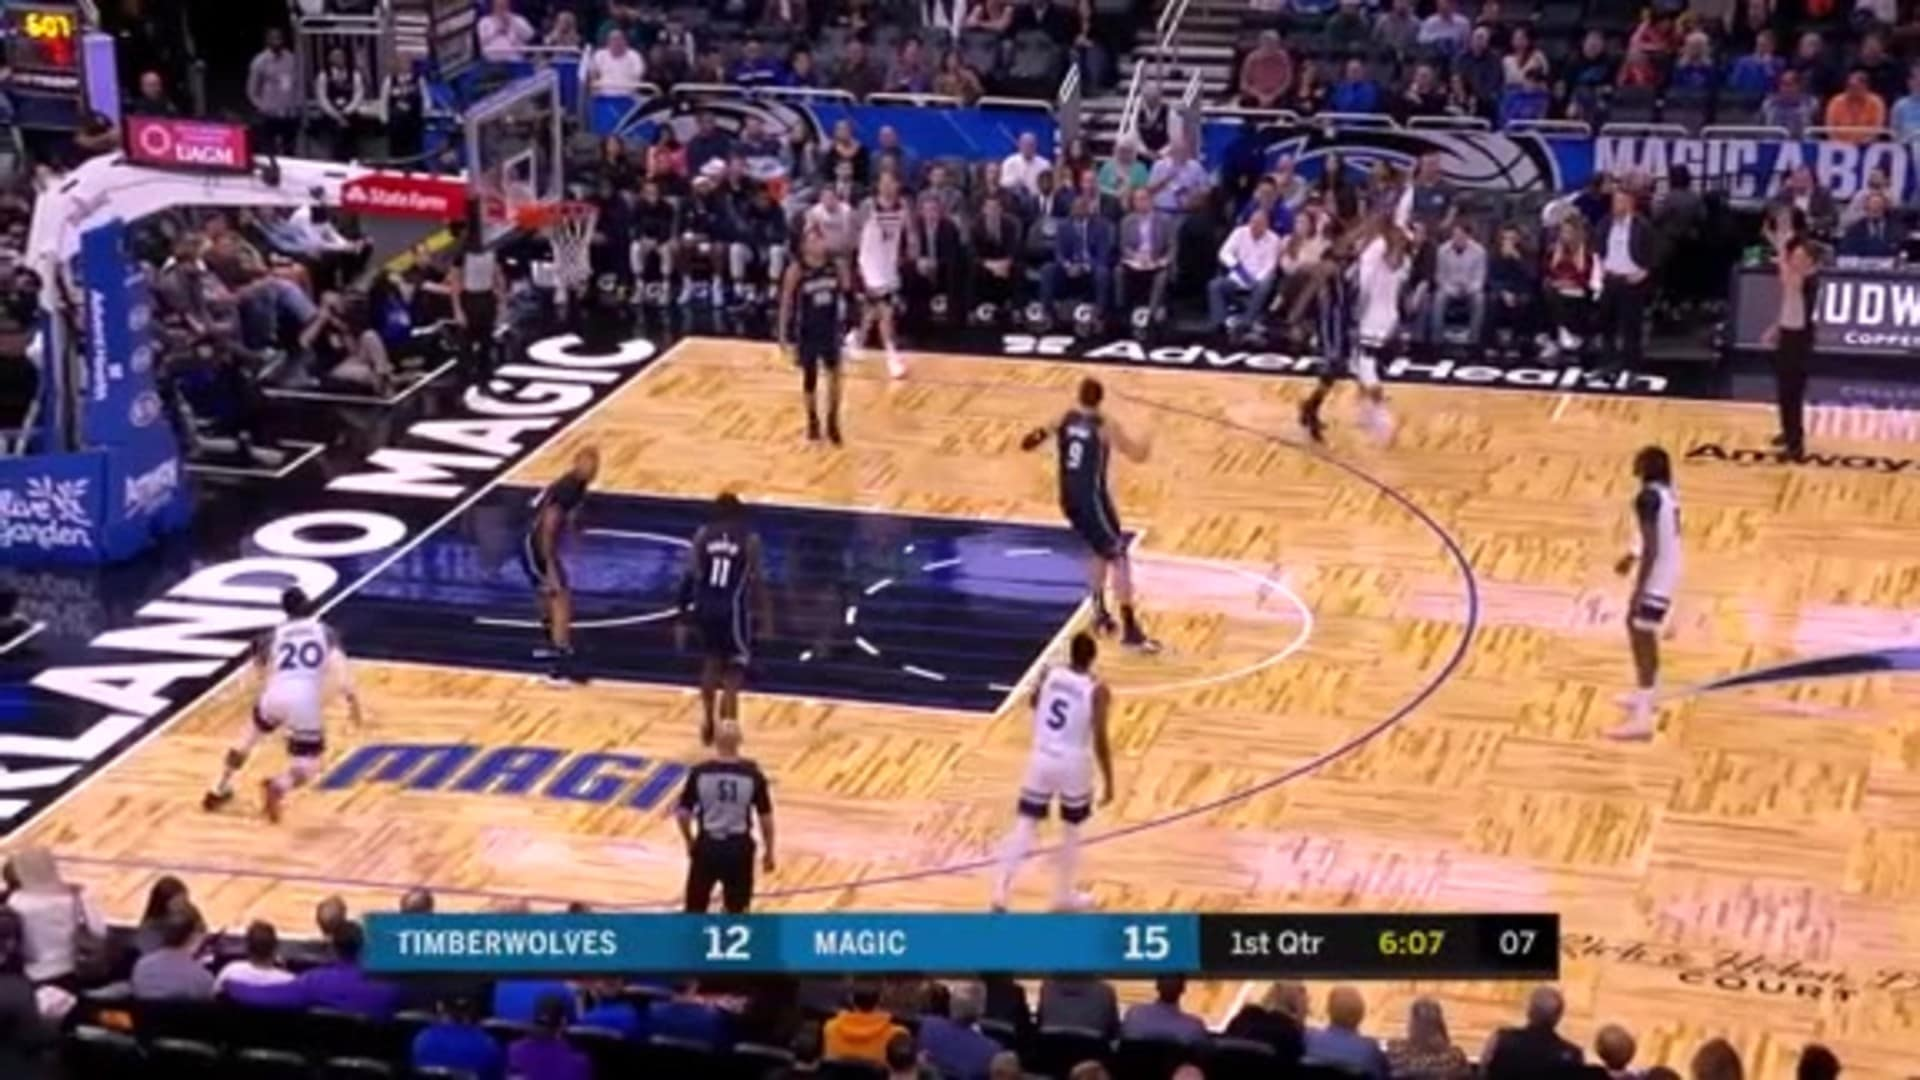 Russell Hits A Contested 3 To Tie The Game